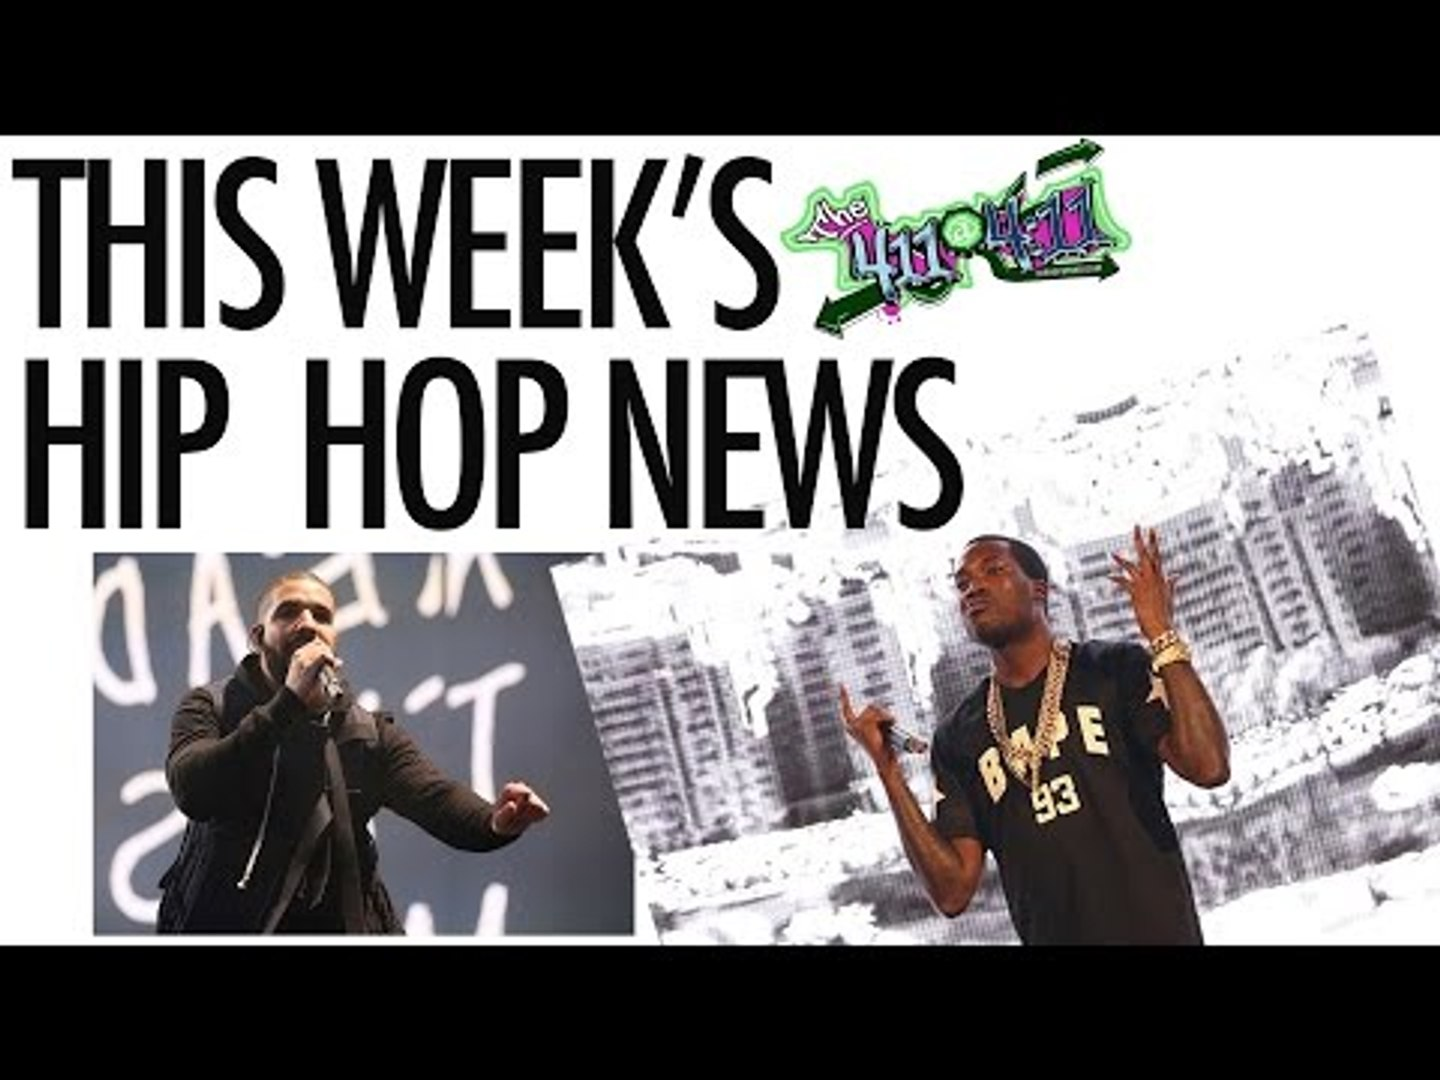 More Hip Hop Beefs in Hip Hop News This Week | Social Media